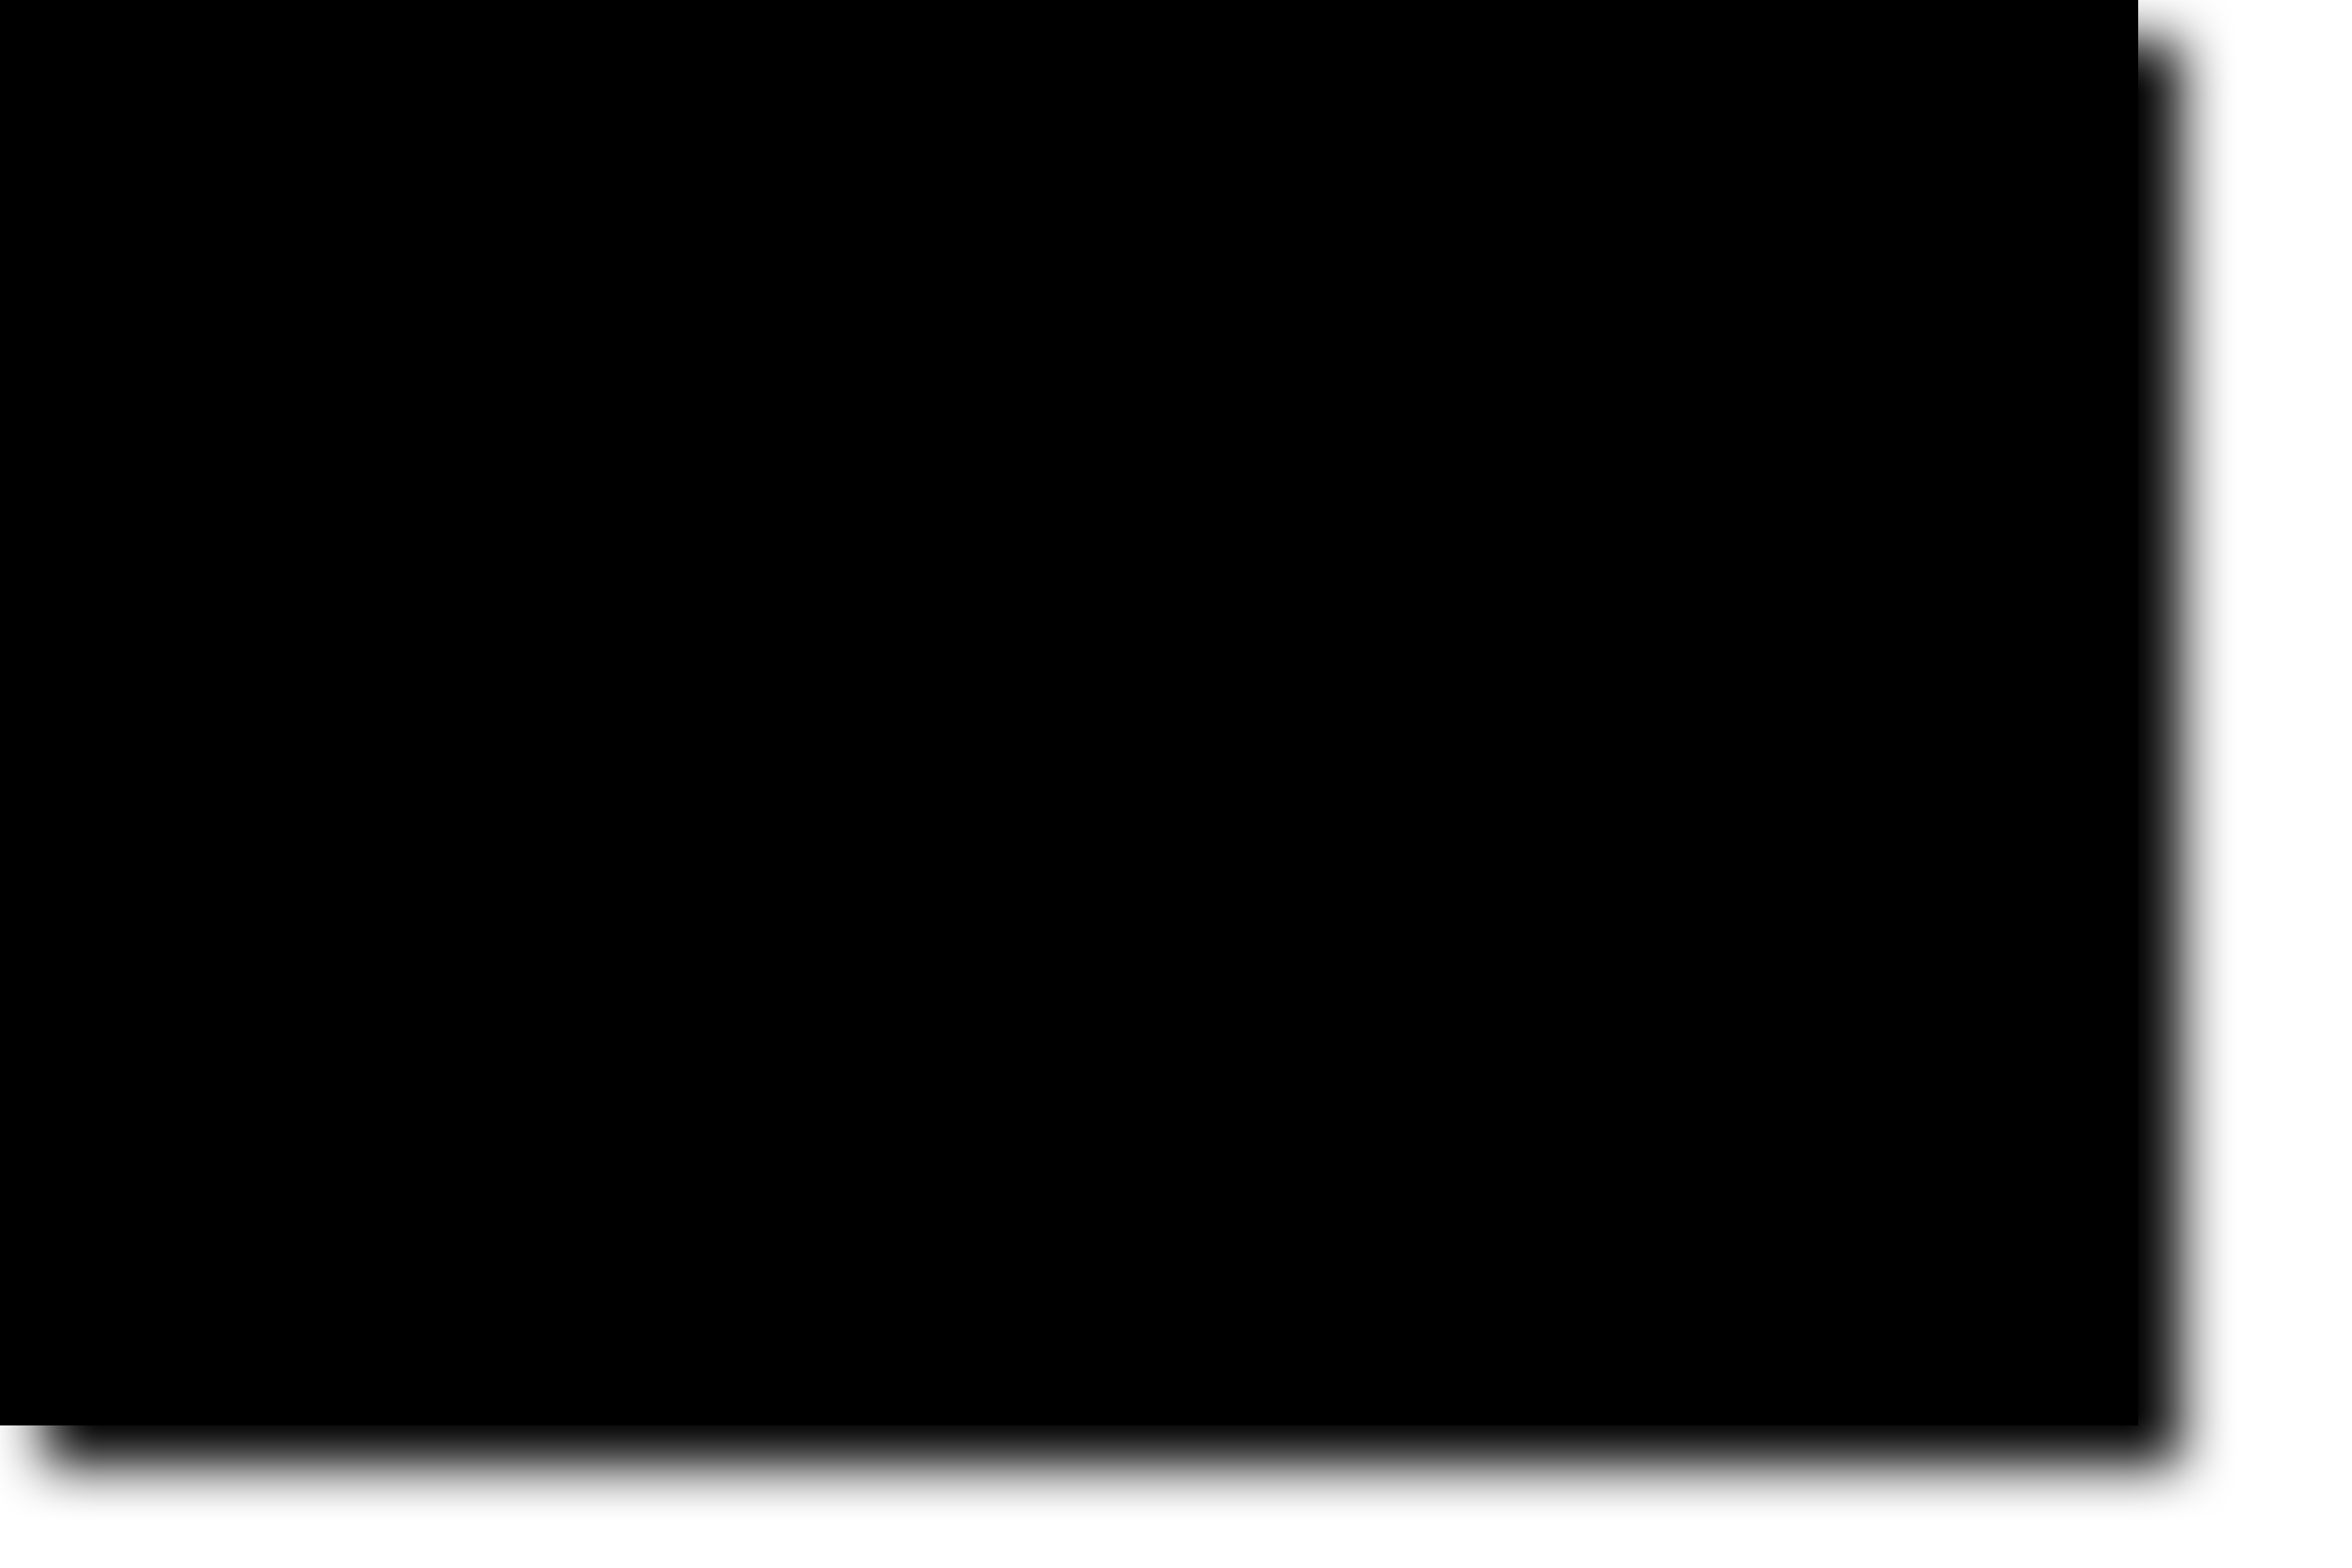 Black rectangle png. Images of square outline